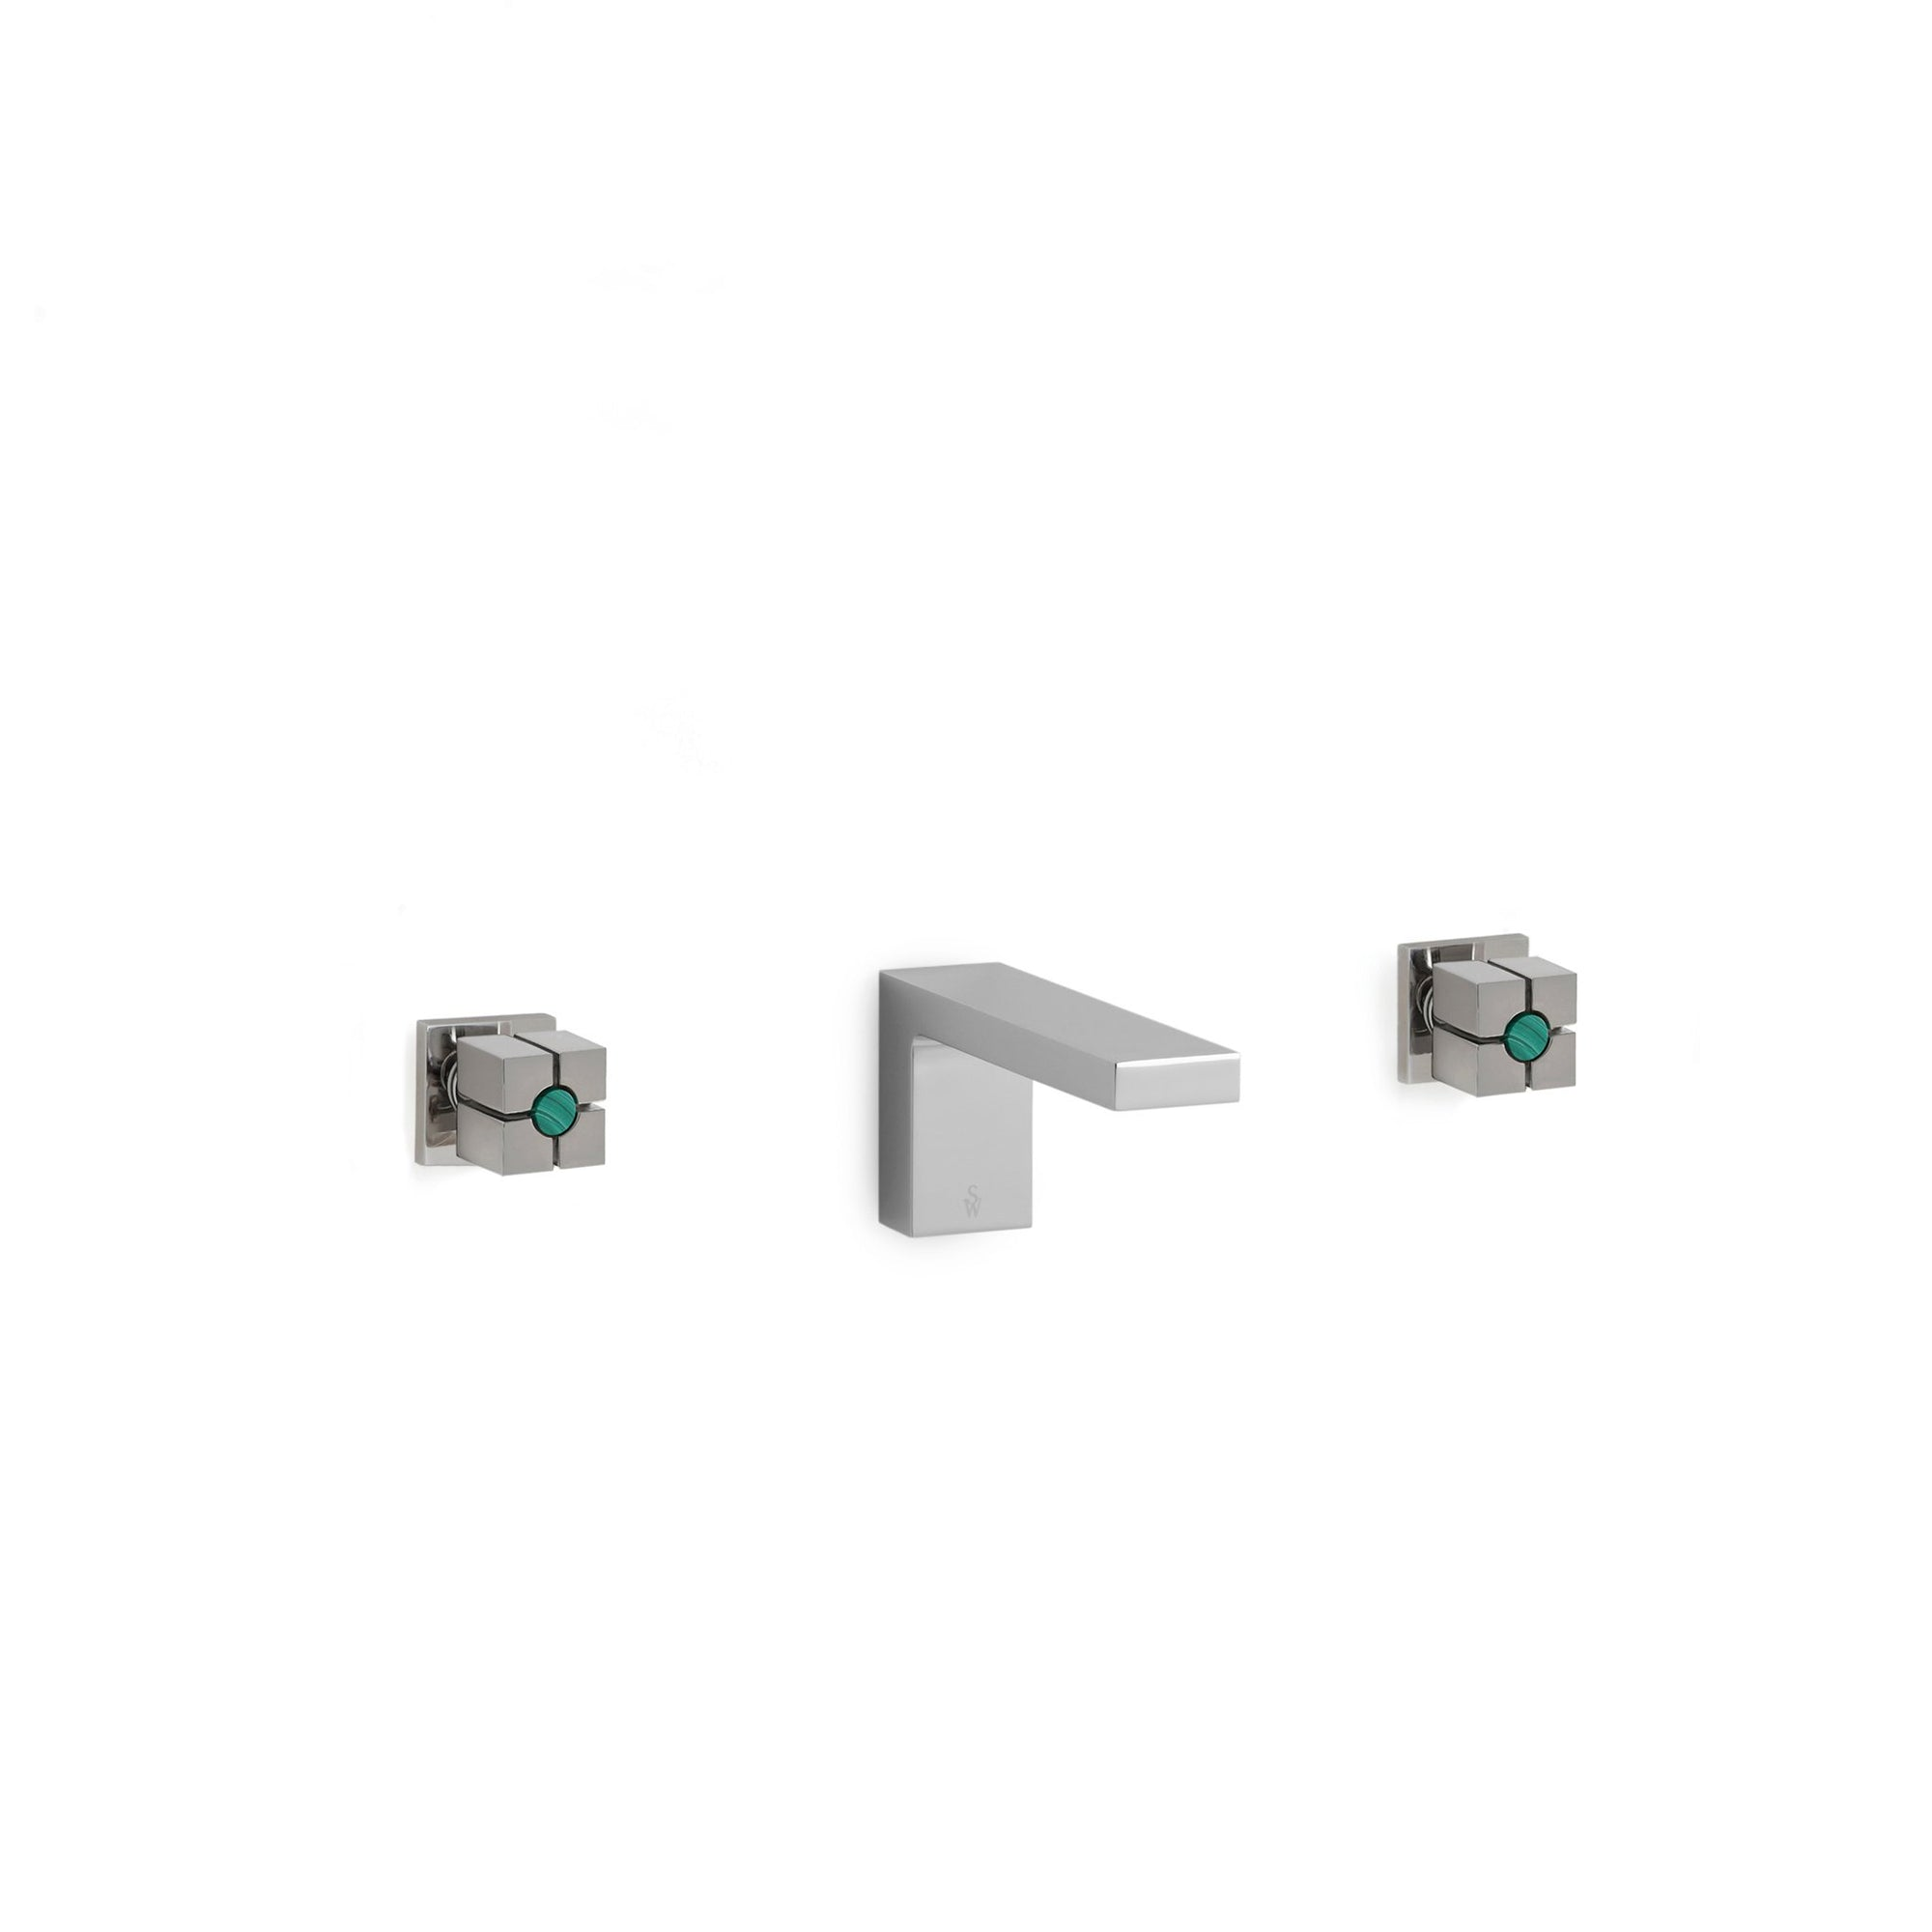 2103WBS101-LE-MALA-CP Sherle Wagner International Modern with Malachite Insert Quad Knob Wall Mount Faucet Set in Polished Chrome metal finish